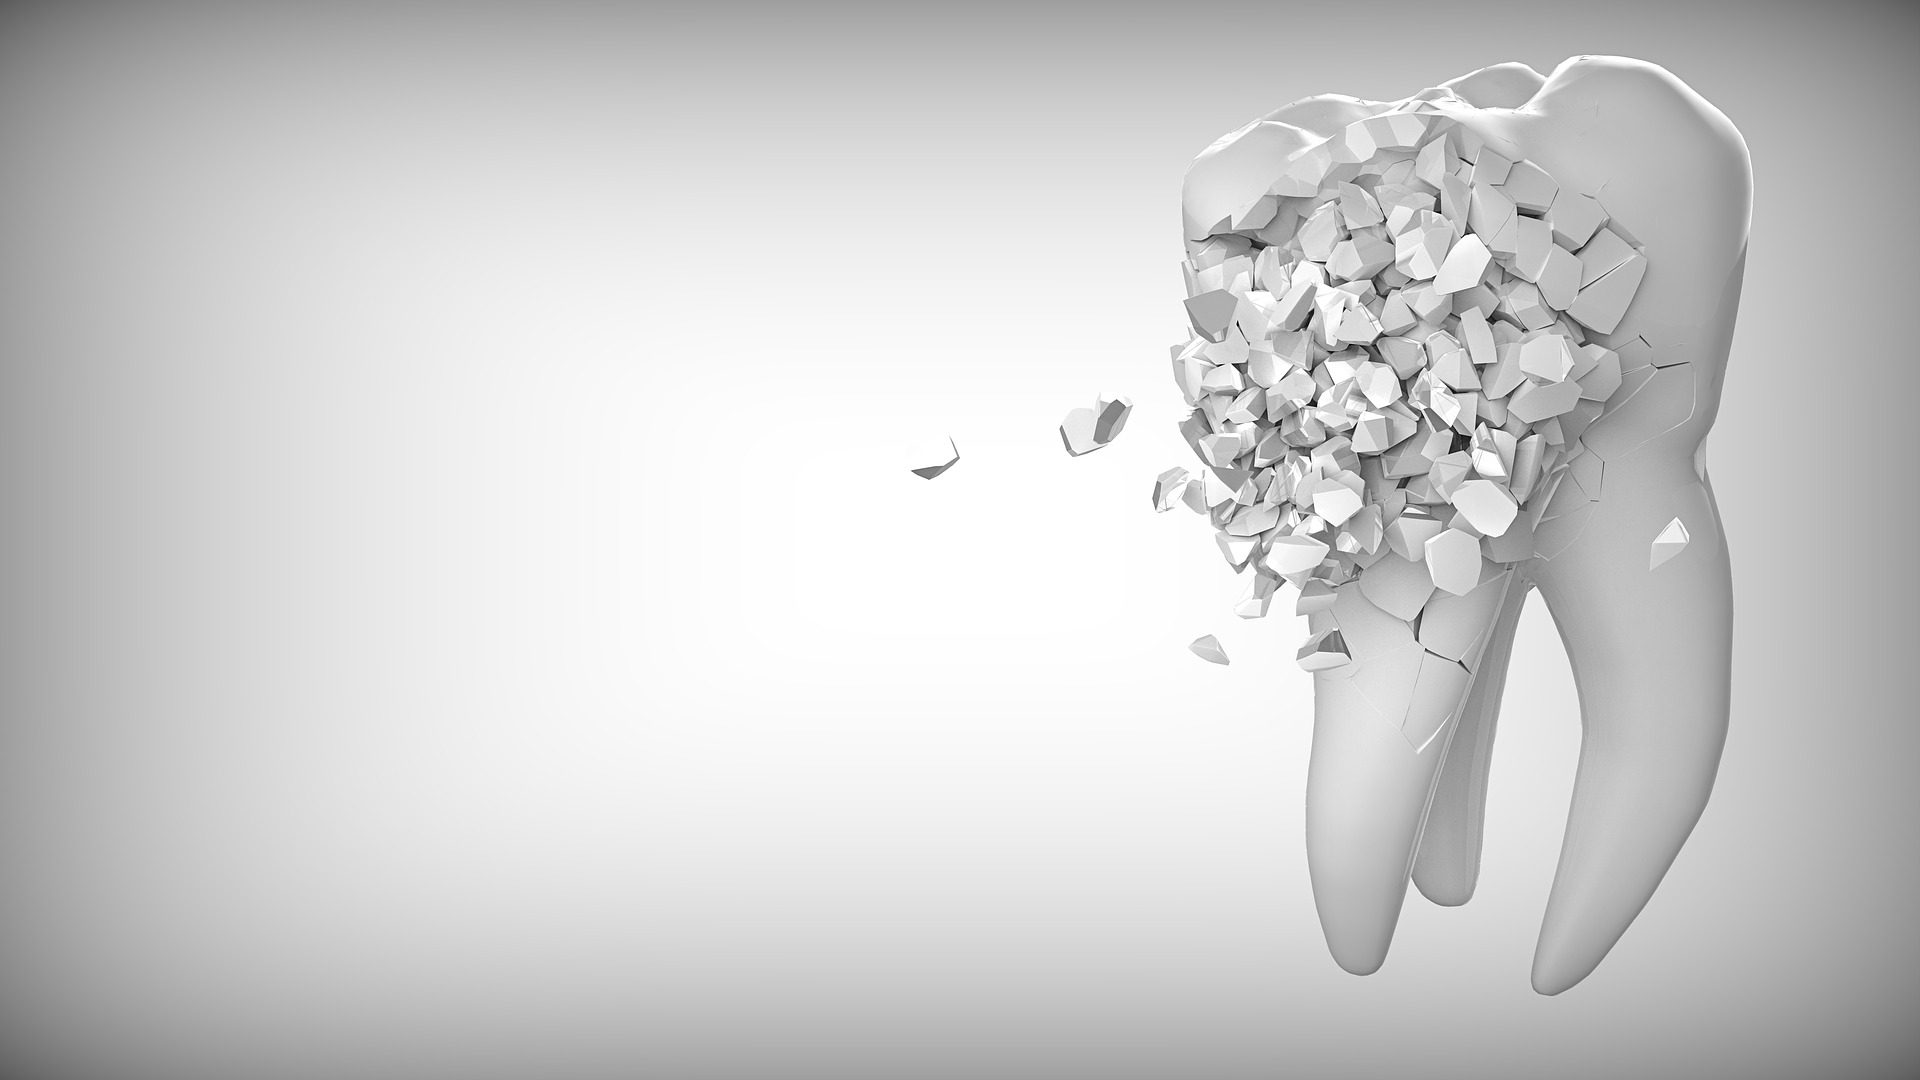 tooth-2874551_1920